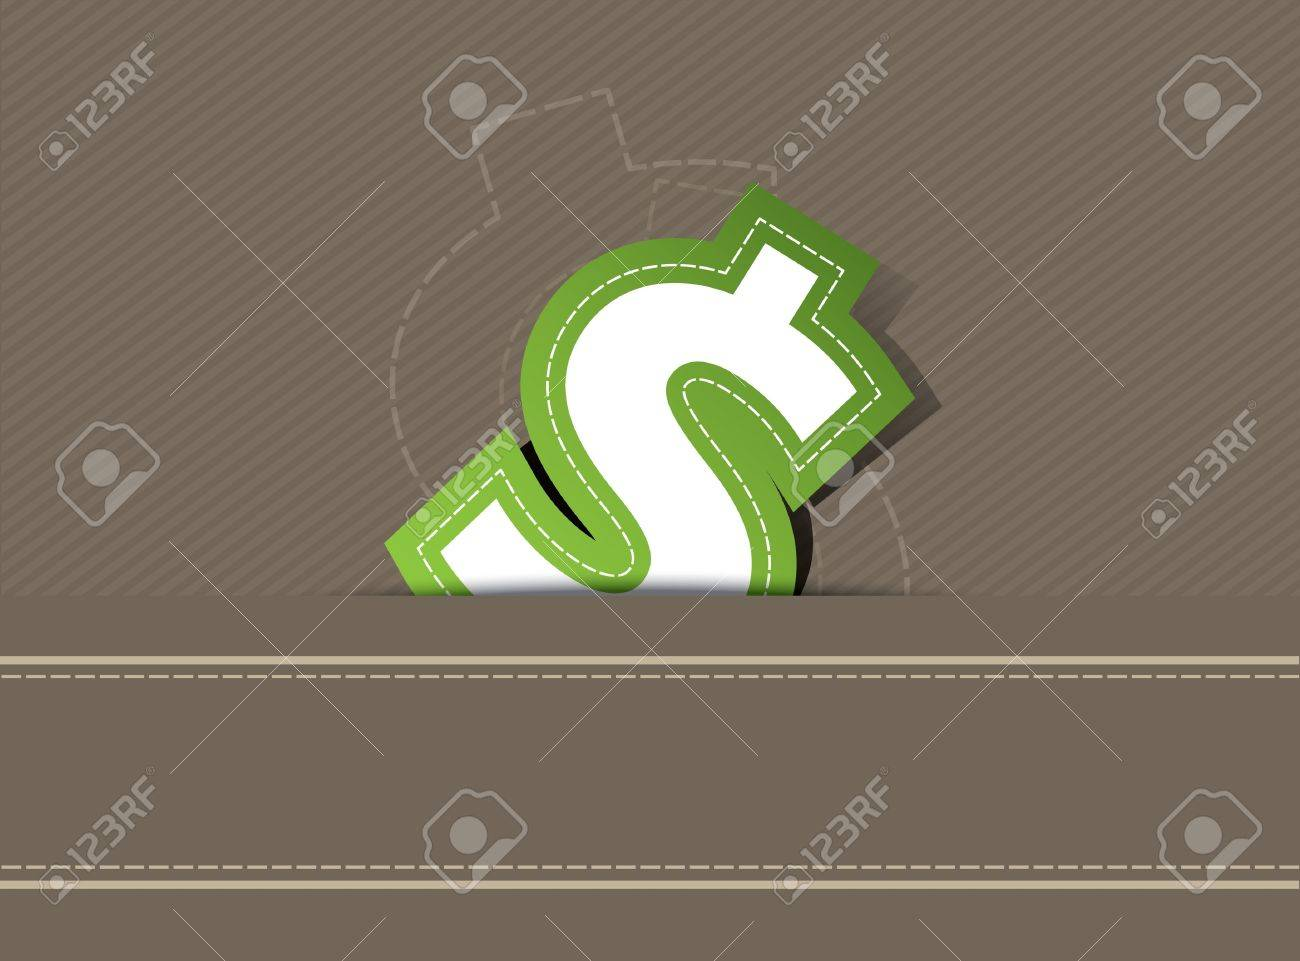 Money icon design on retro background Stock Vector - 13177430